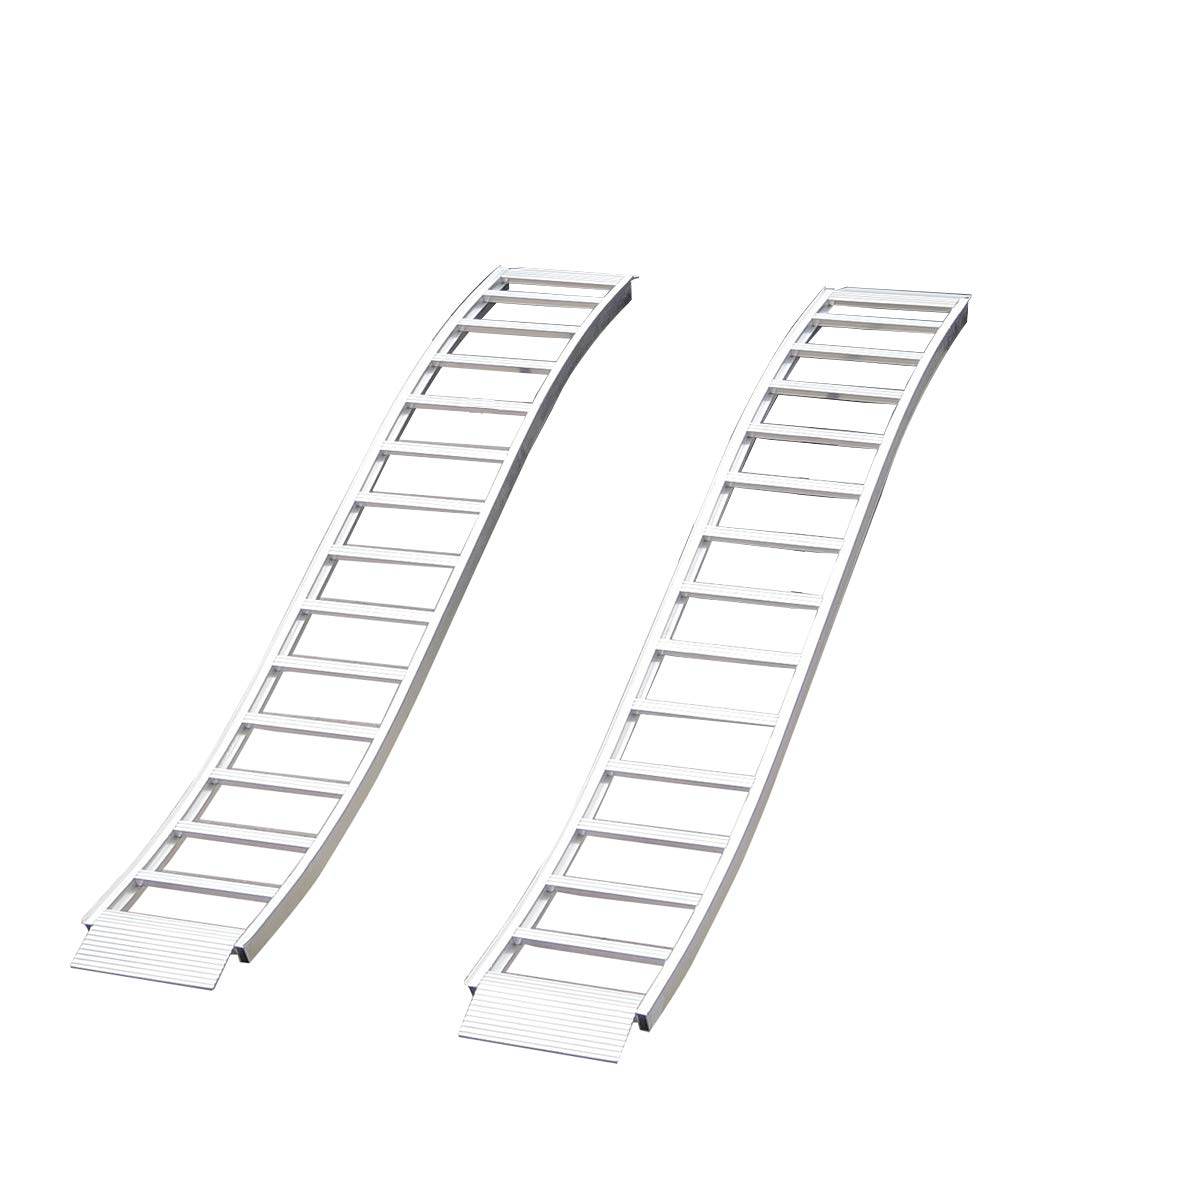 CargoSmart Aluminum Fixed S-Curve Ramp with Treads (2pk) - Easily and Safely Load and Unload Your Light Equipment, Lawn Tractors, ATVs and More, 1,500 lb. Capacity, 12'' W x 90'' L